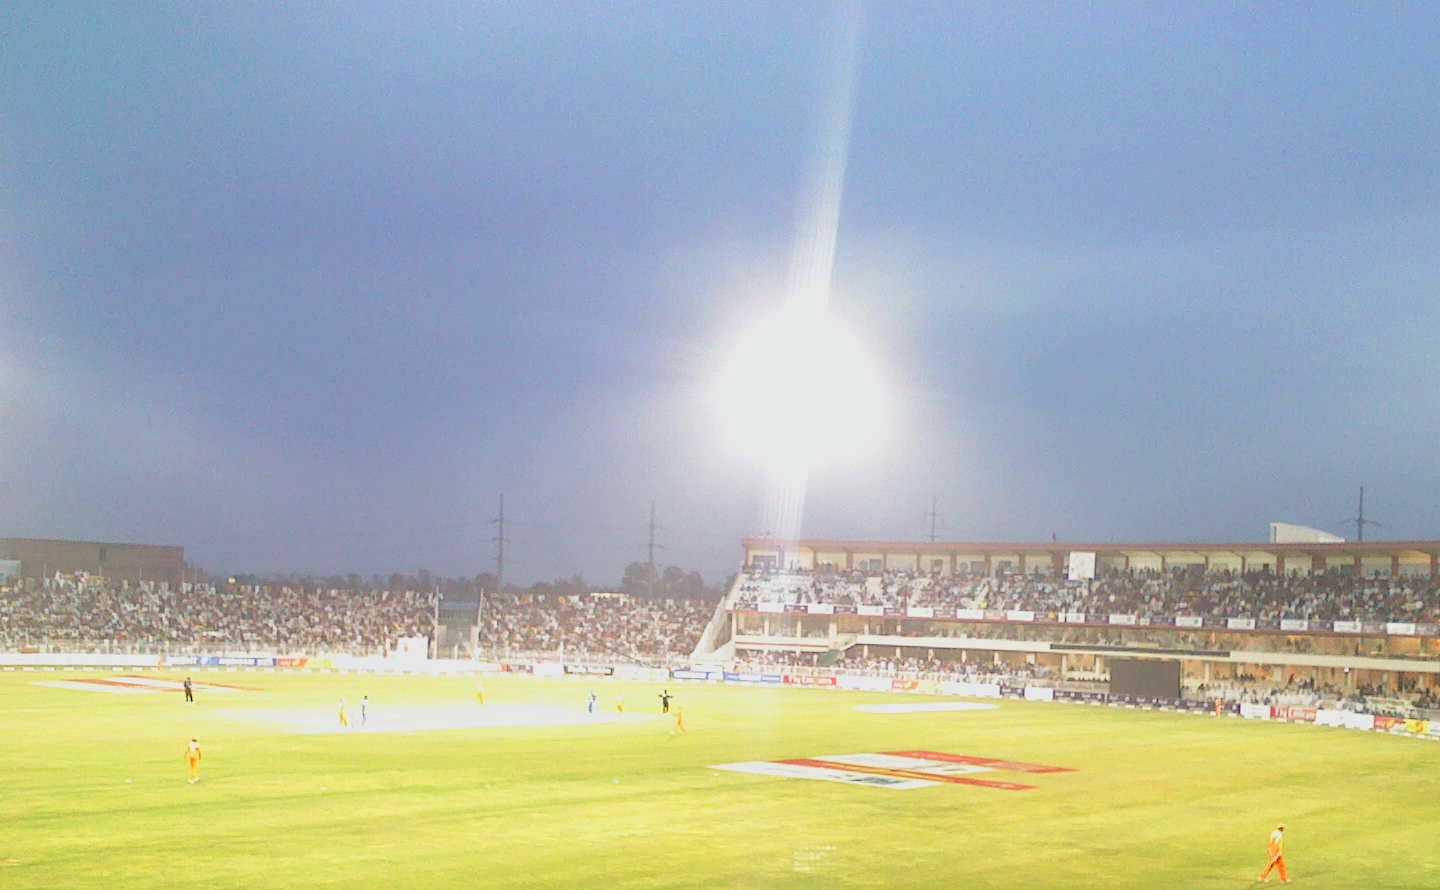 Rawalpindi Cricket Stadium Islamabad & Rawalpindi, Rawalpindi Cricket Stadium